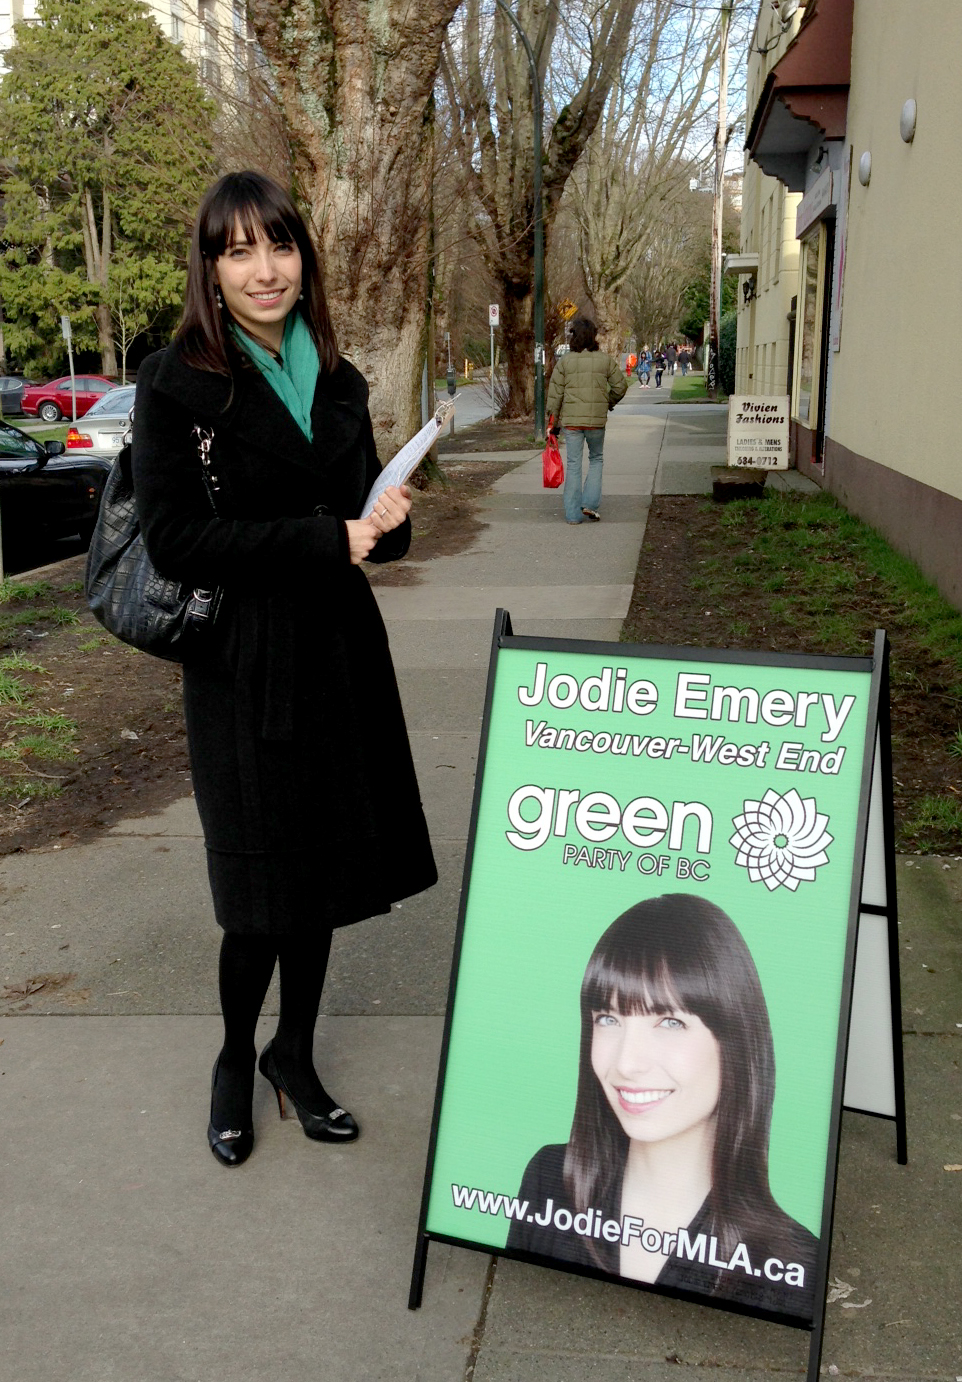 Jodie Emery for Vancouver-West End